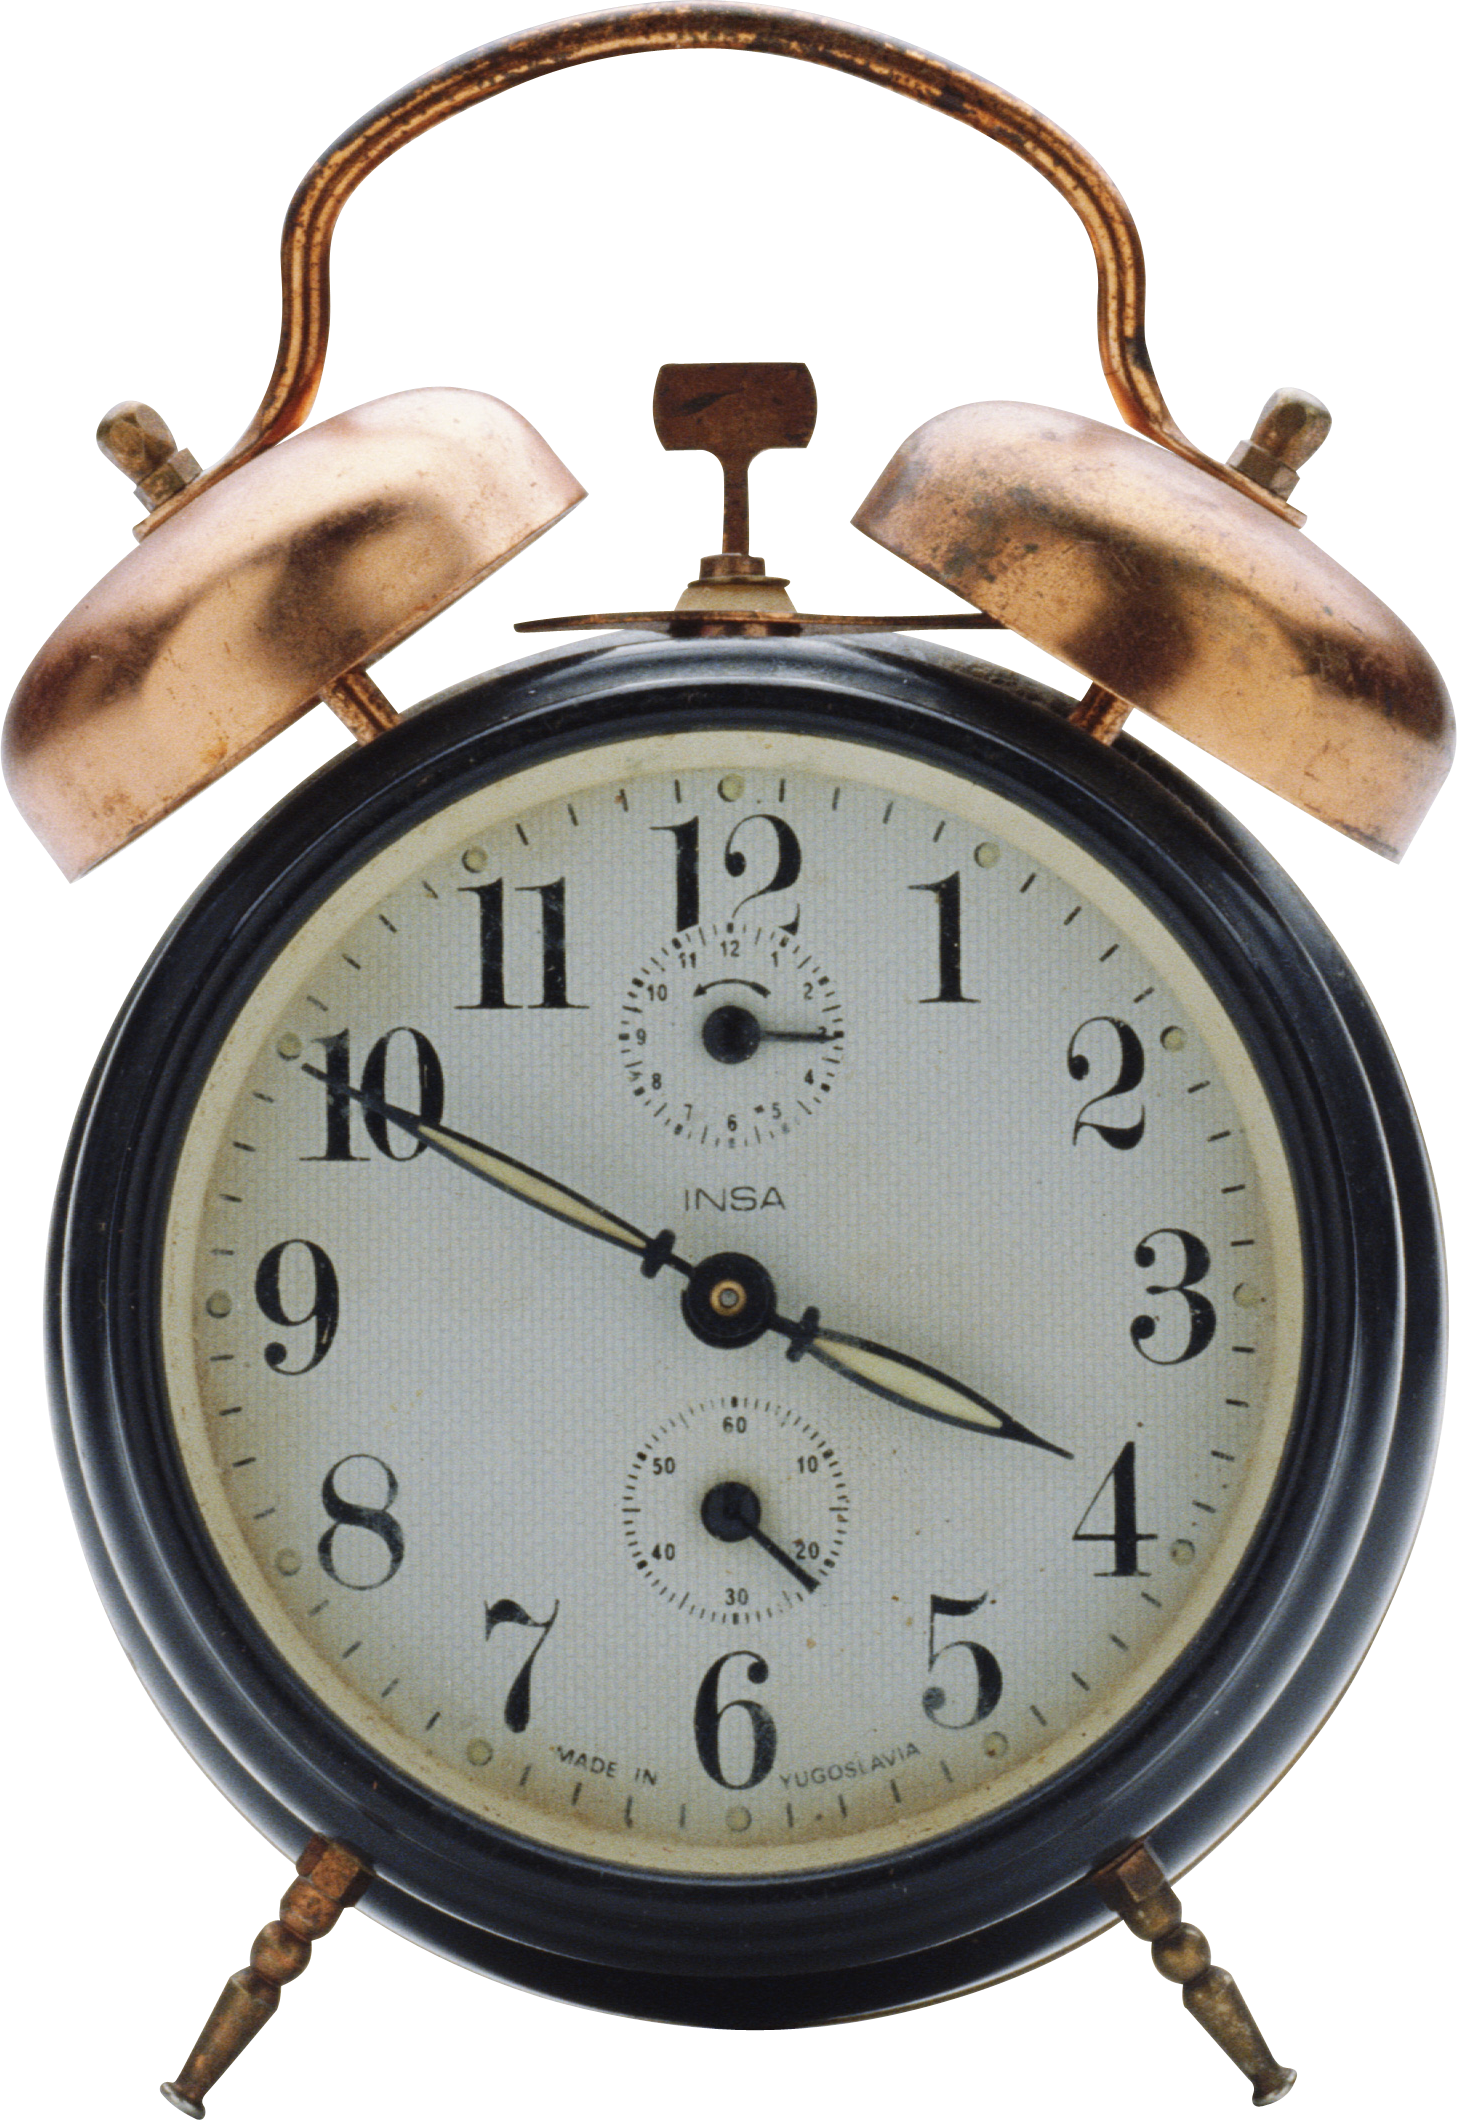 Clock png images stopwatch. Hourglass clipart table watch